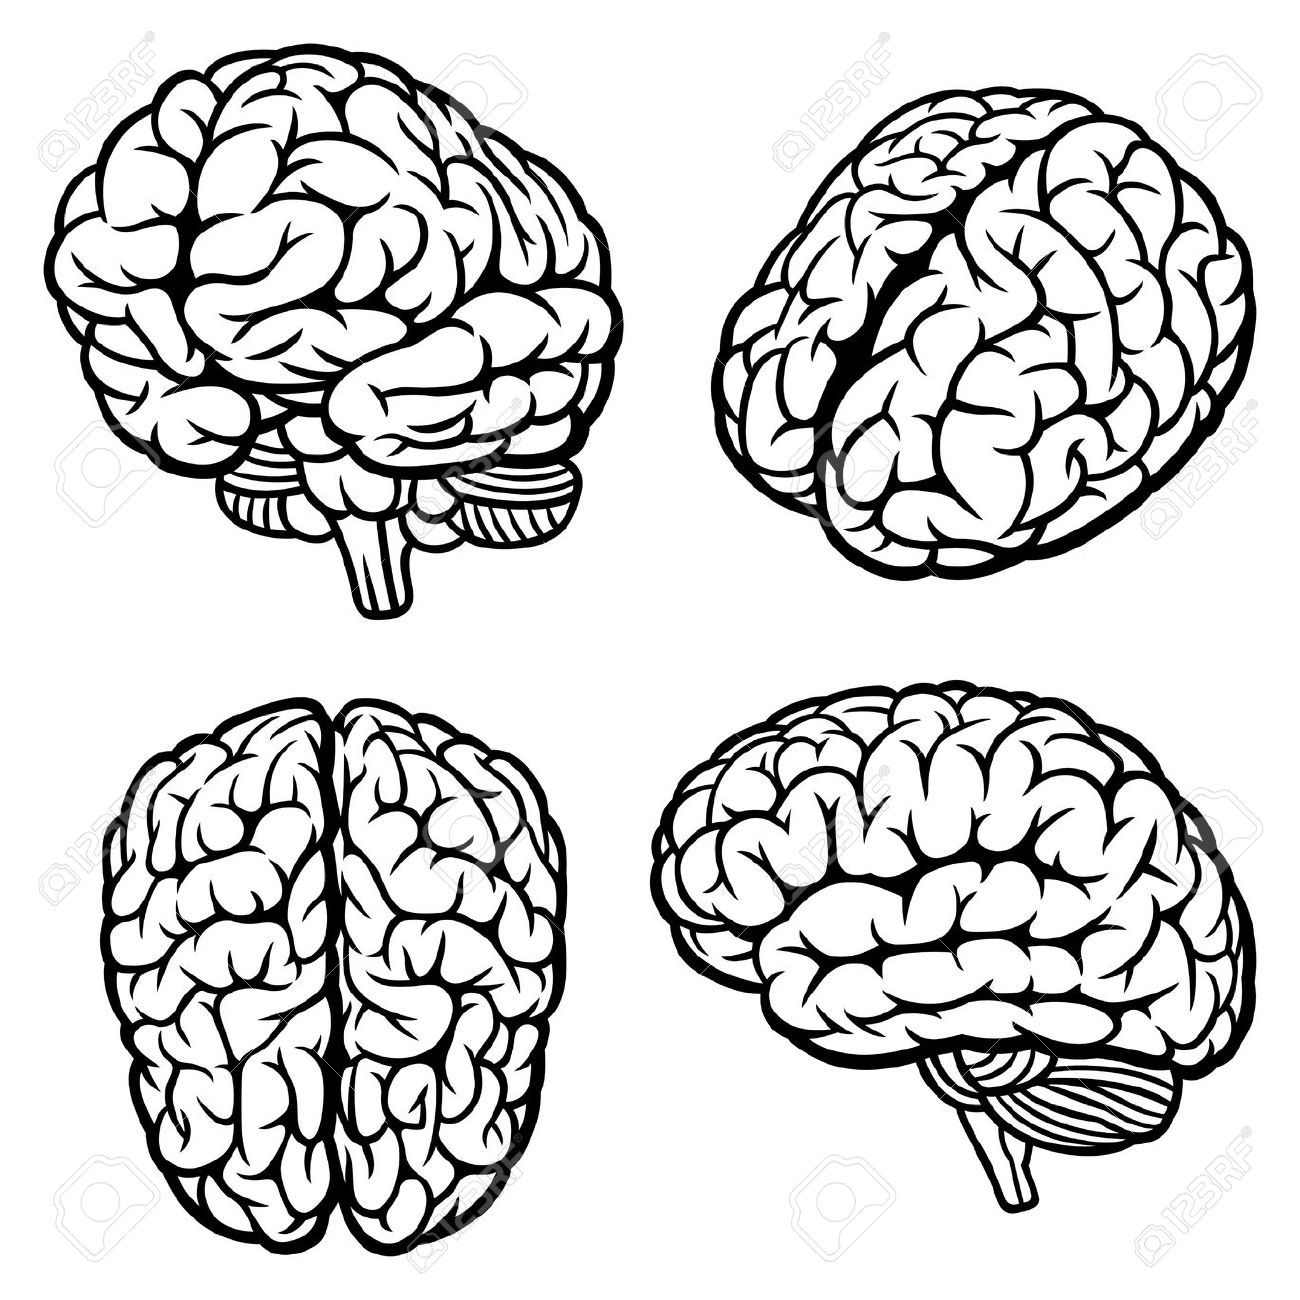 brain outline clipart black and white forward